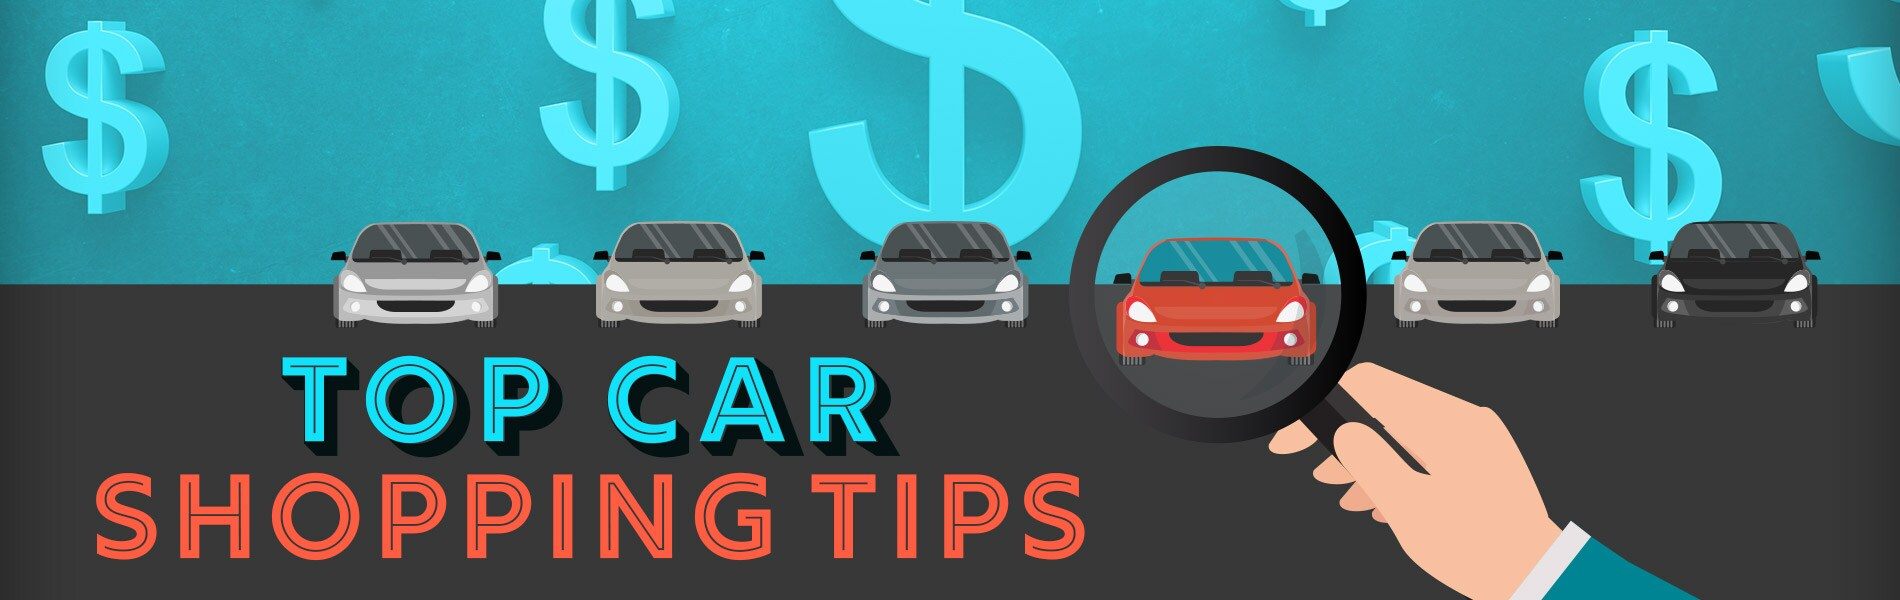 Top Car Shopping Tips | Fort Wayne, IN